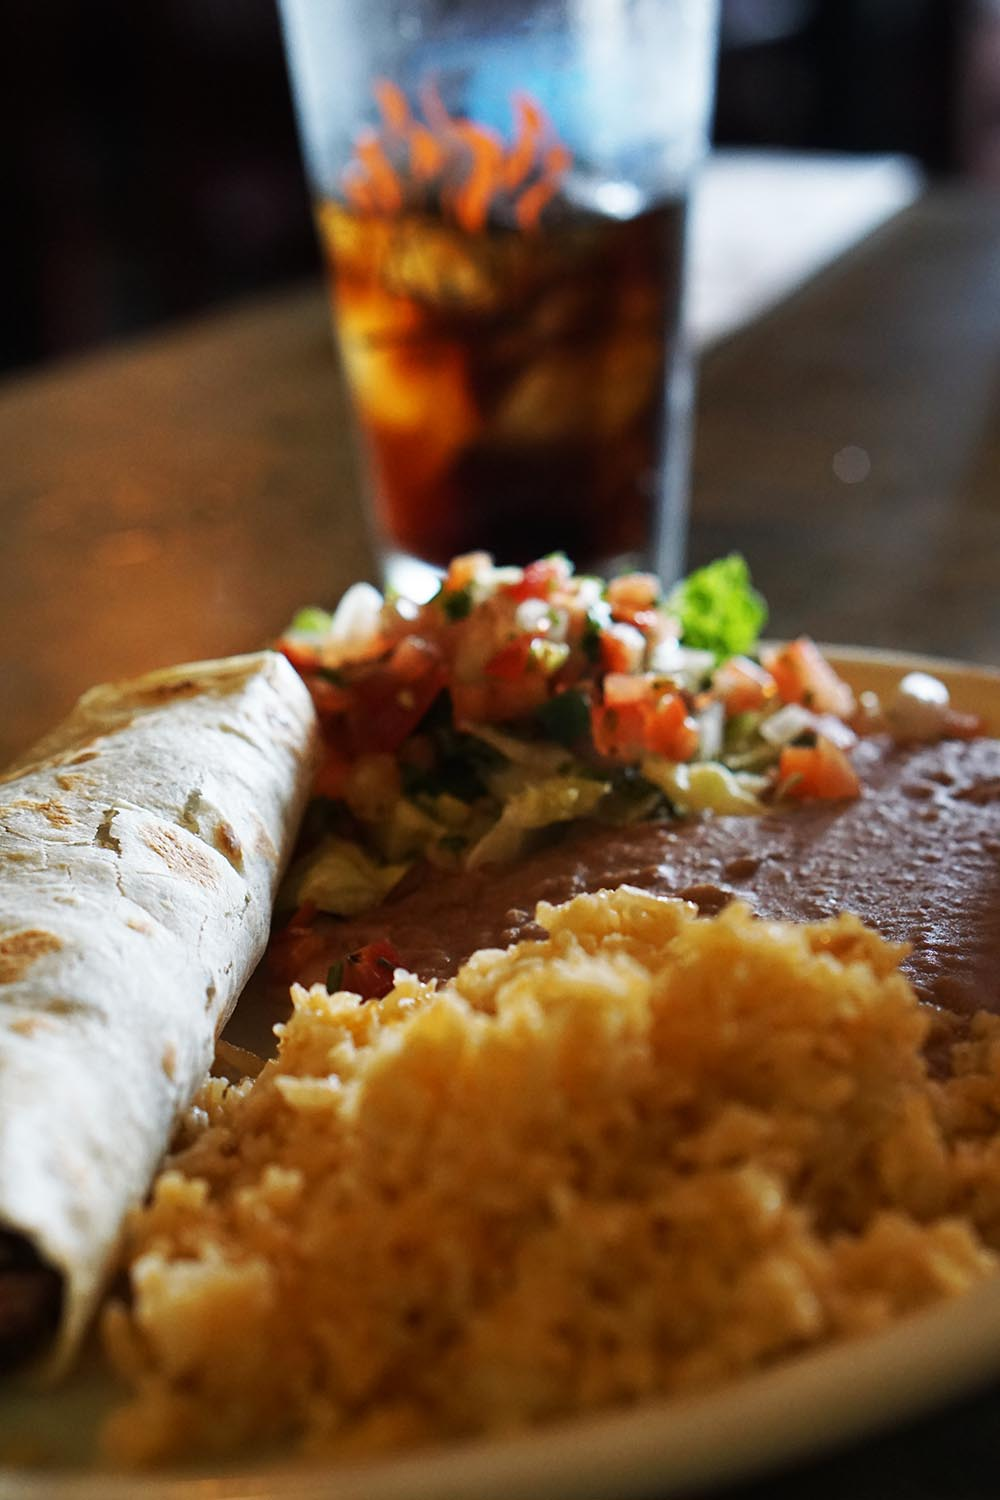 Tacos el Carbon - rolled tortillas filled with your choice of chicken or steak.